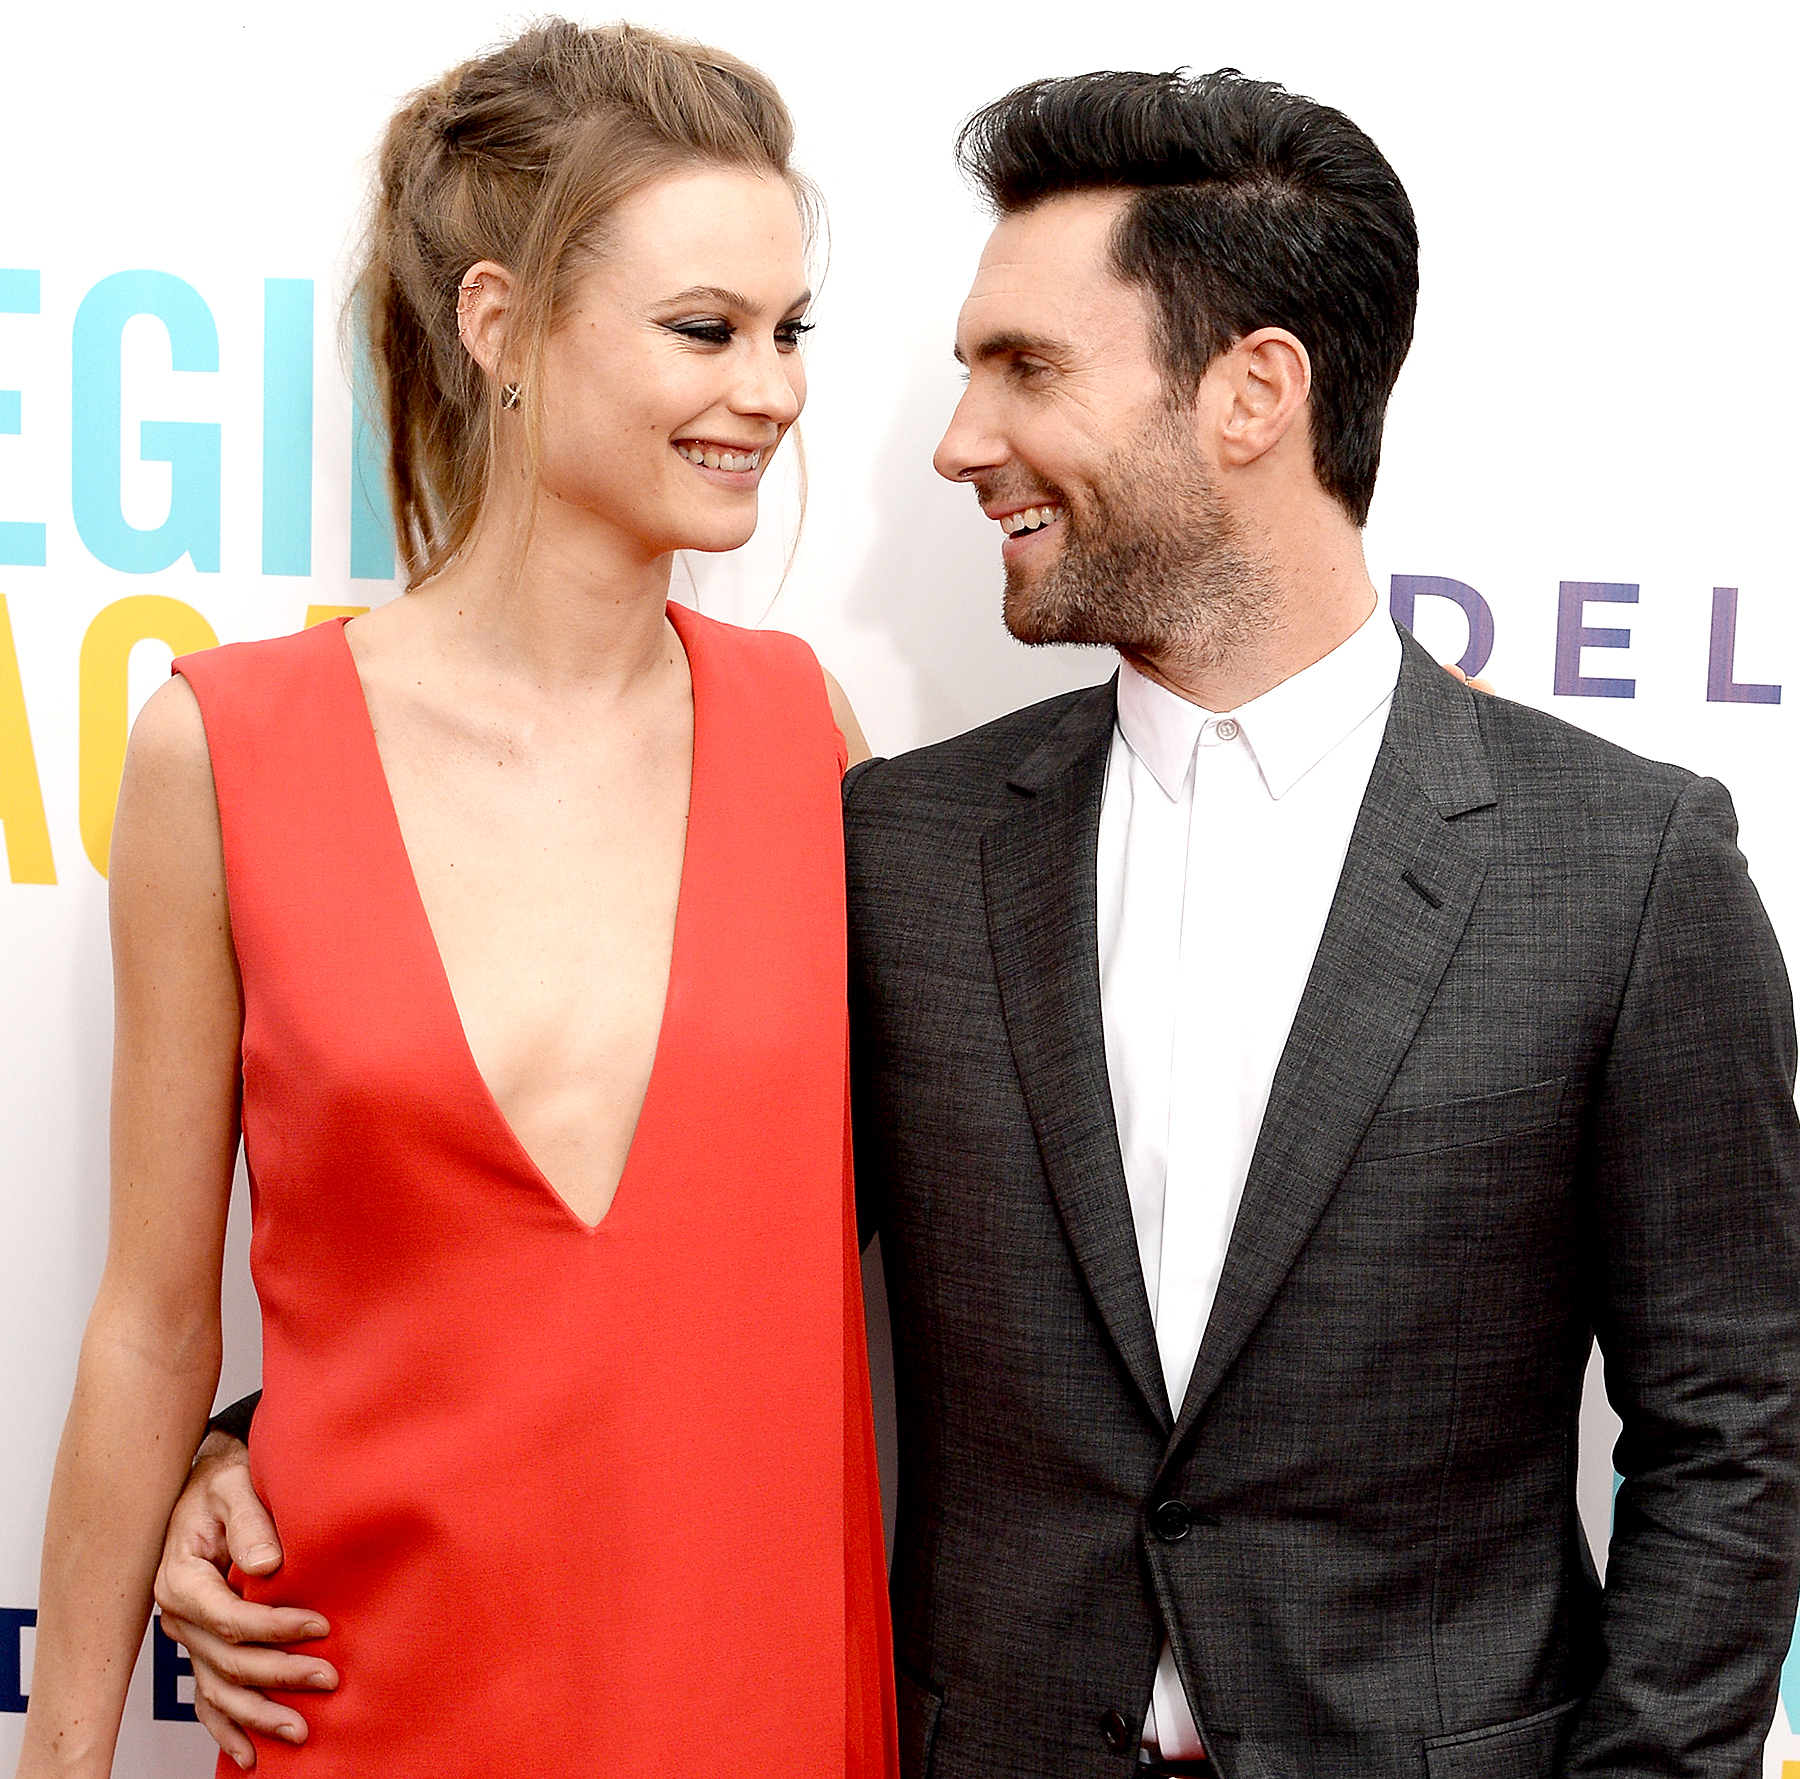 Behati Prinsloo and Adam Levine attend the